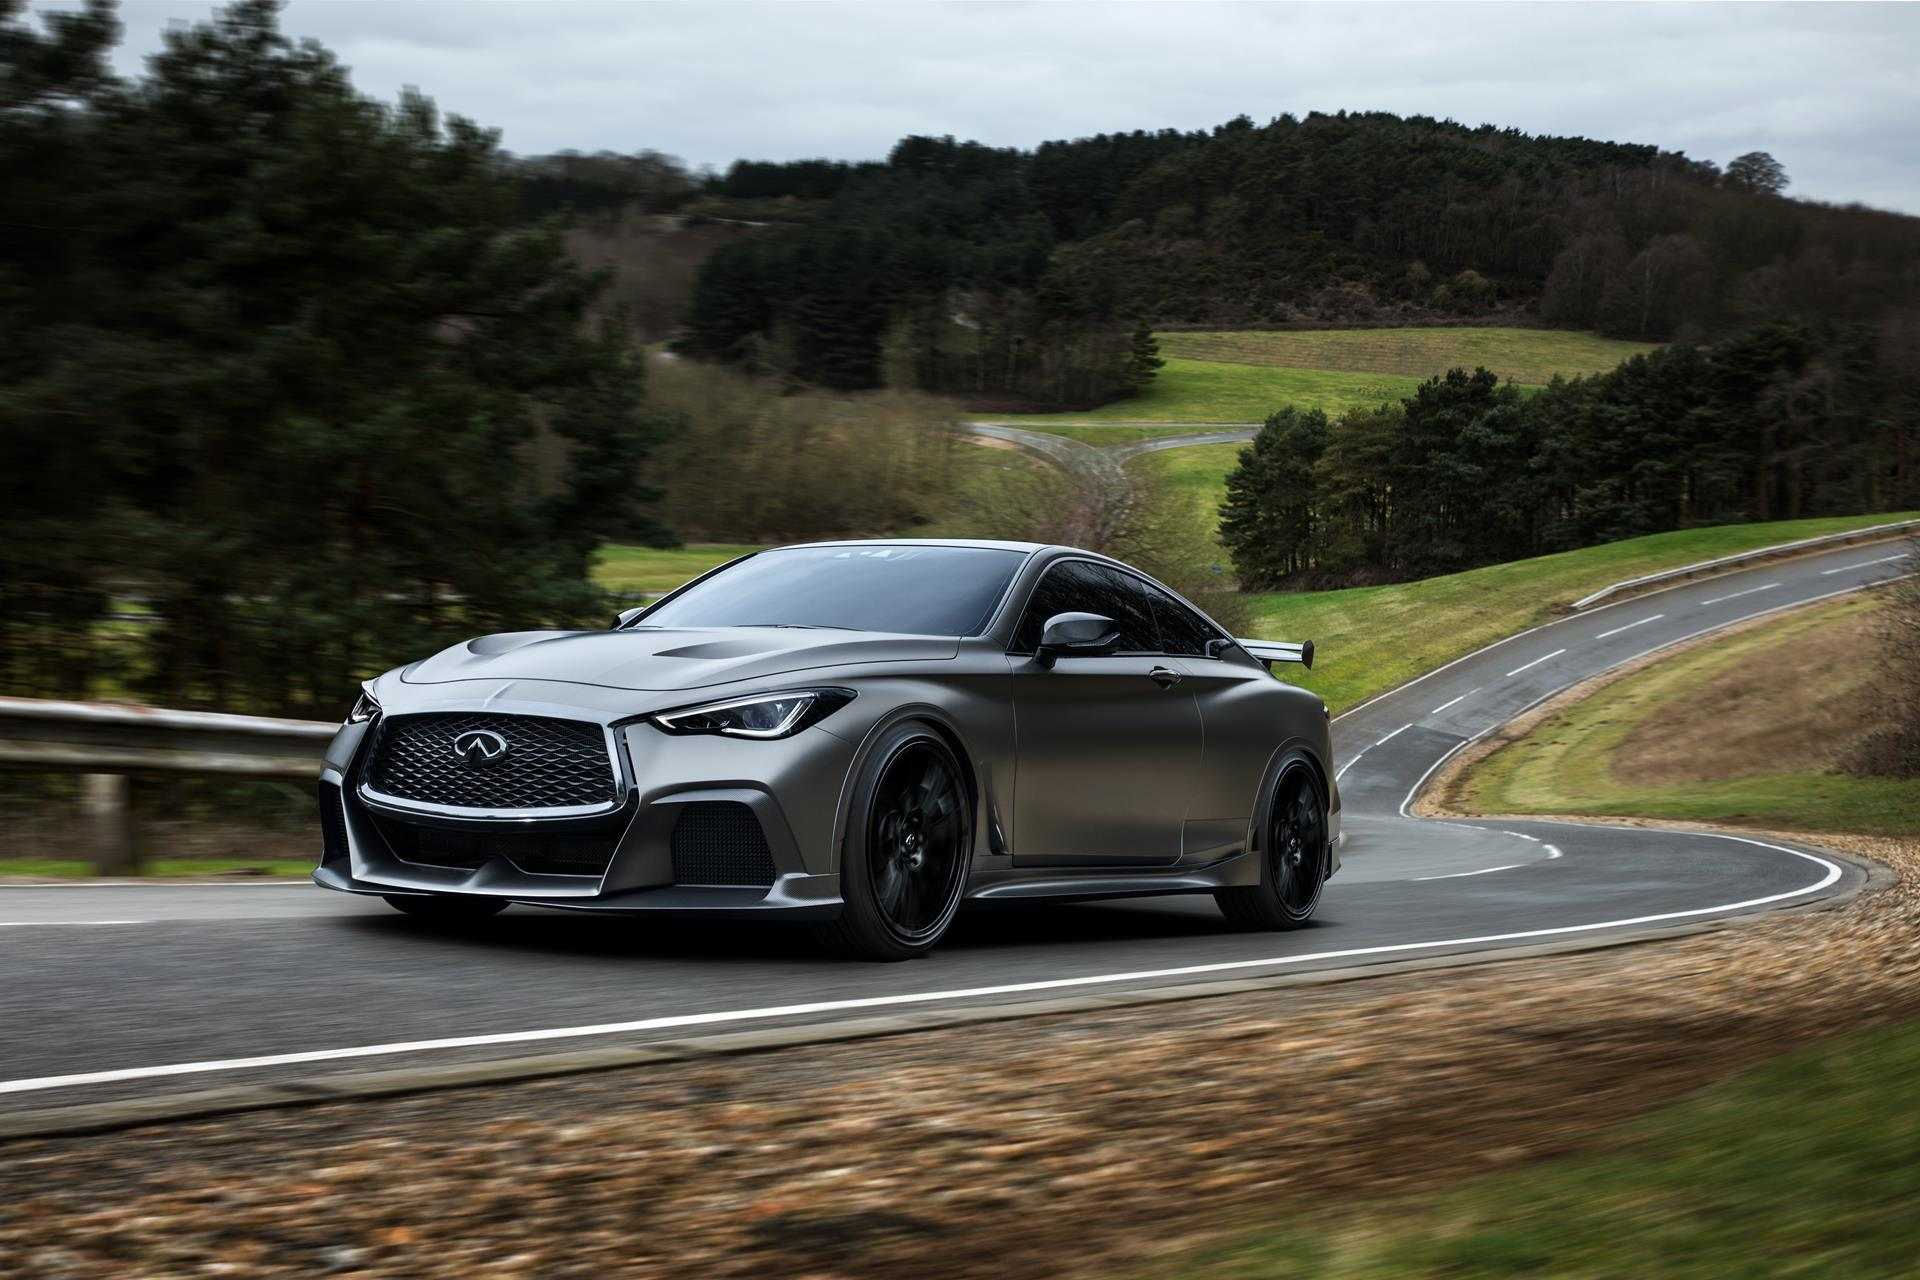 2017 Infiniti Project Black S News And Information Research And Pricing